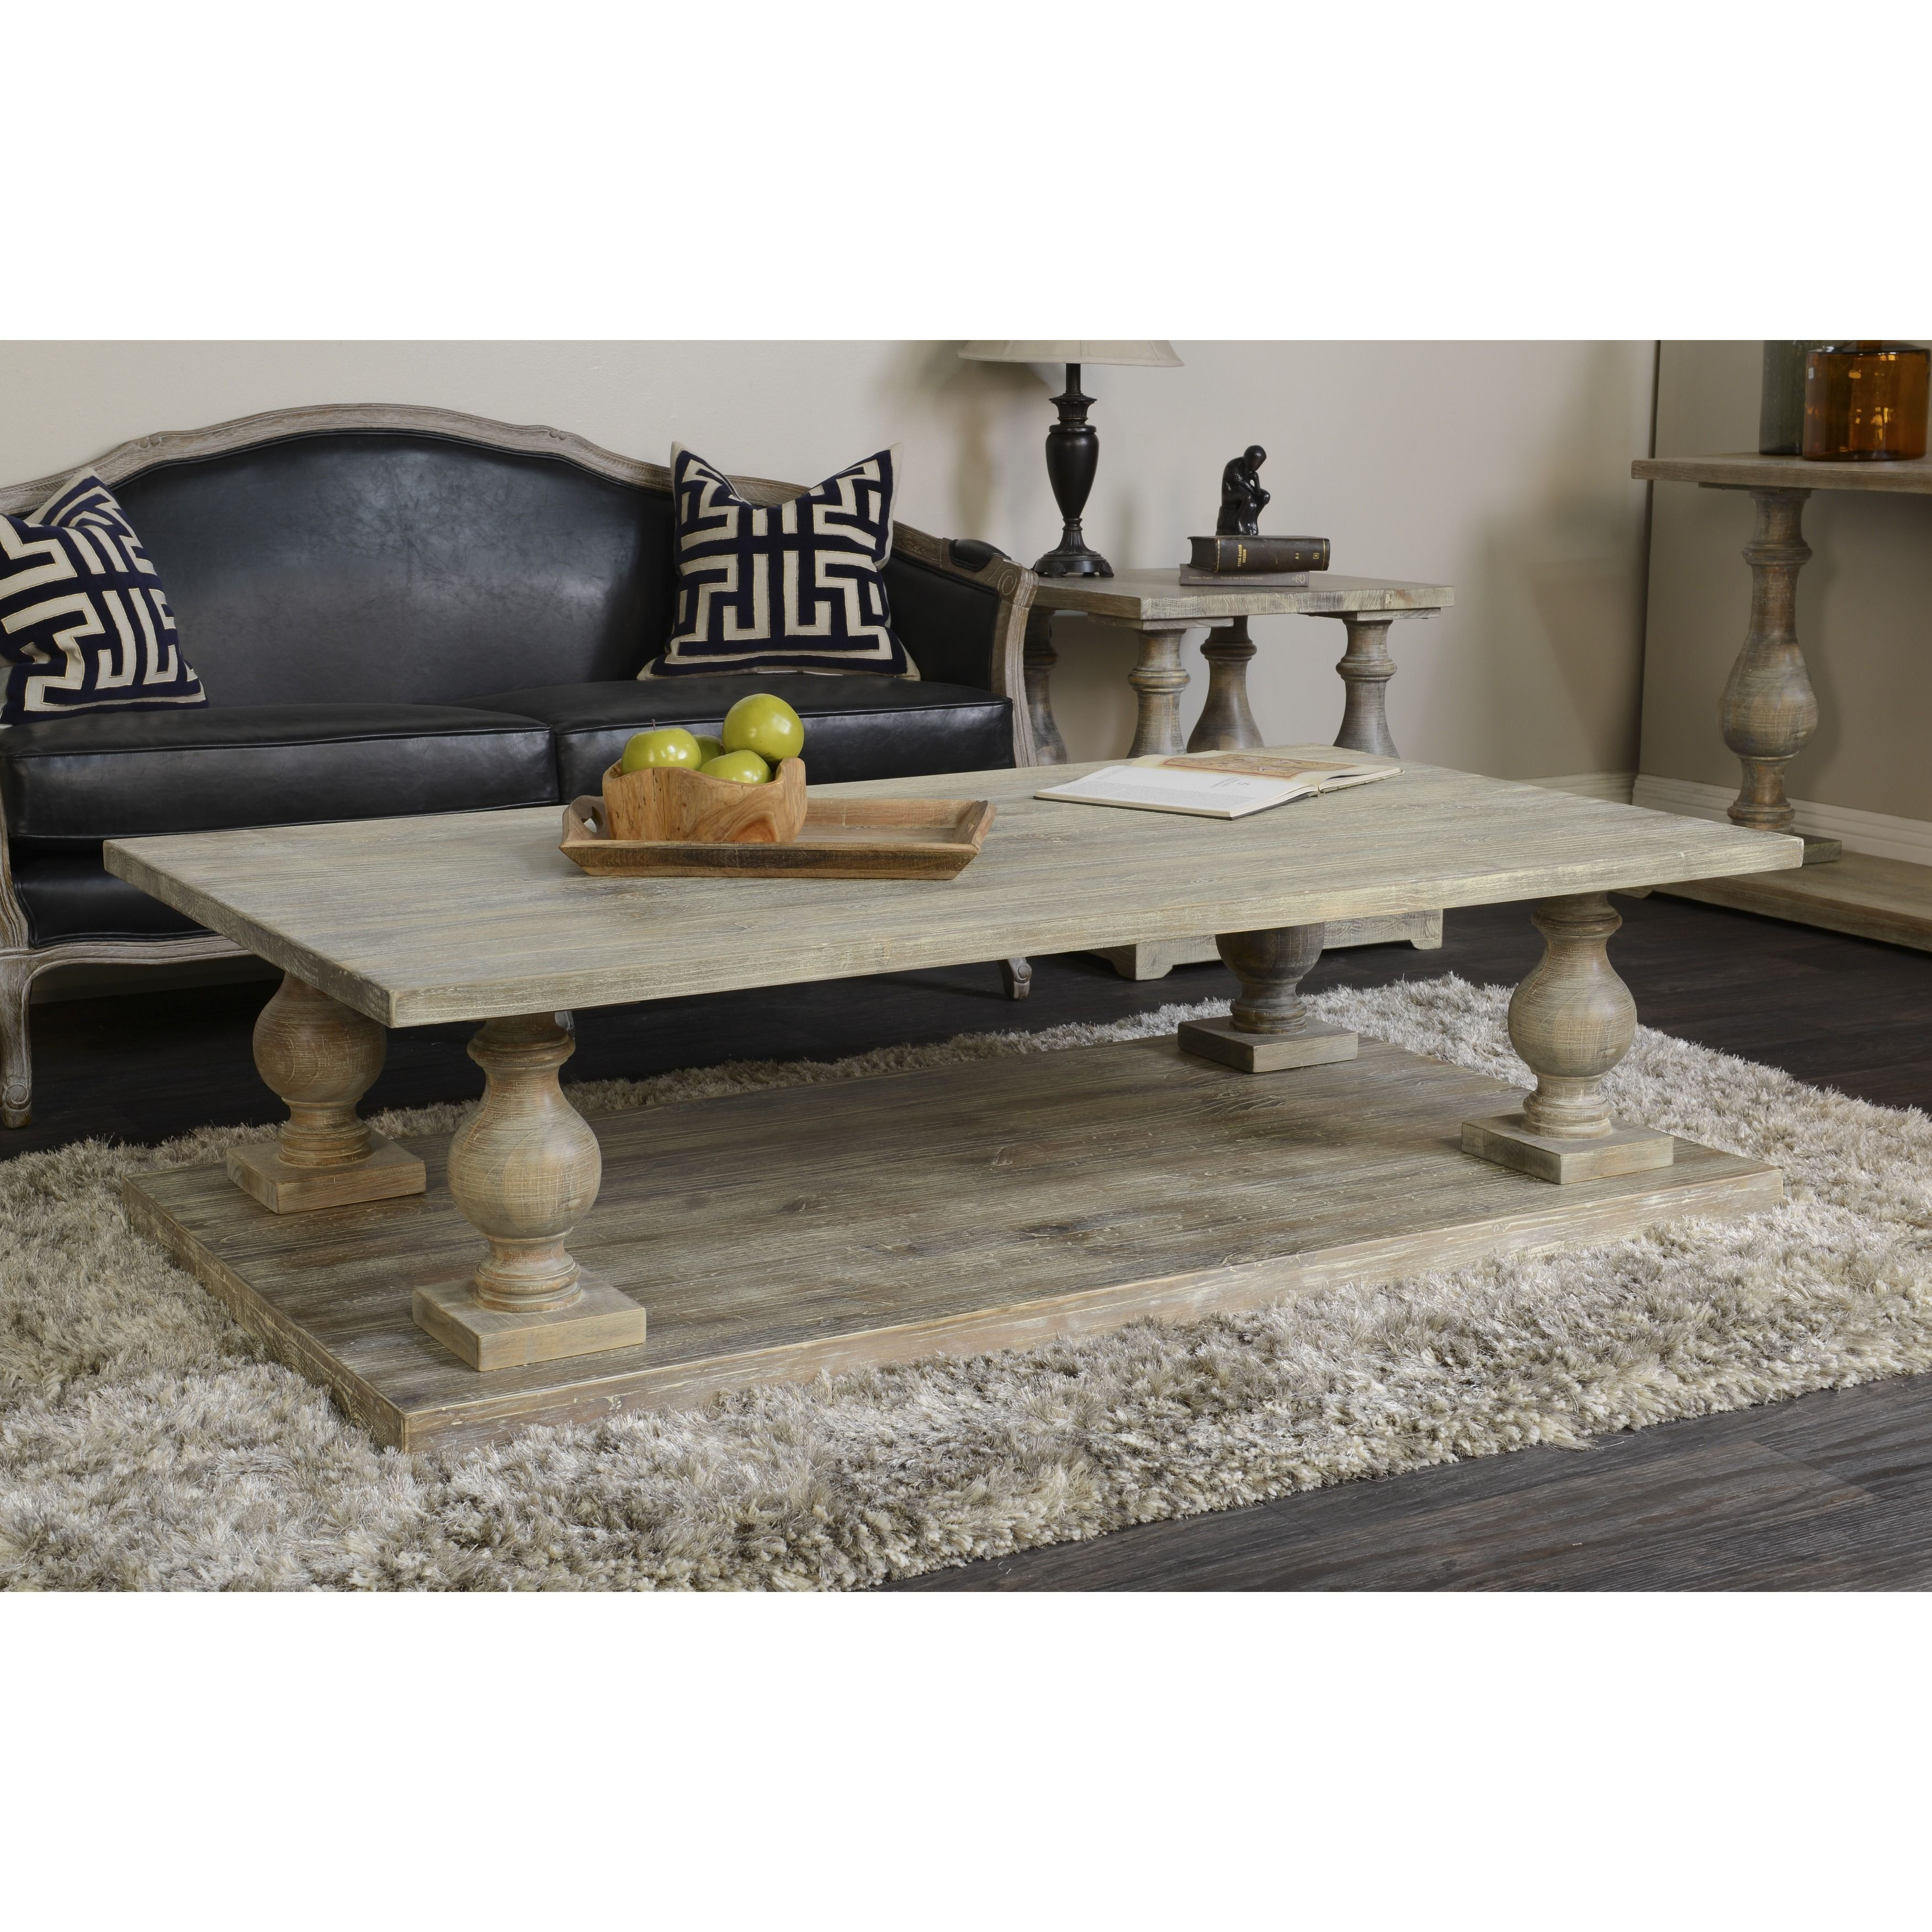 Parvin Hand Crafted Wood Coffee Table By Kosas Home 65 Inches